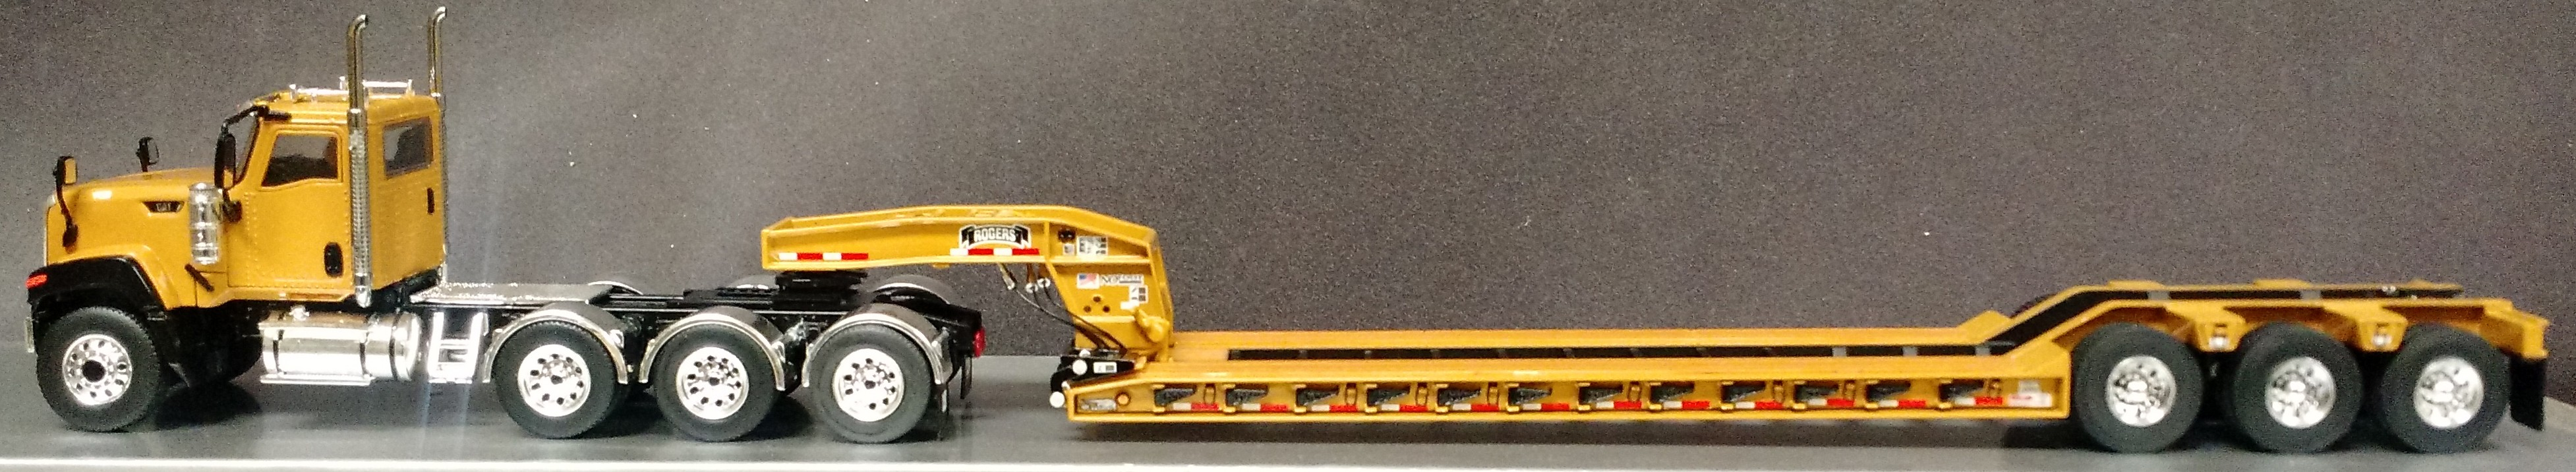 CATERPILLAR CT680 4 AXLE TRACTOR WITH ROGERS 3AXLE LOWBOY-CAT YELLOW